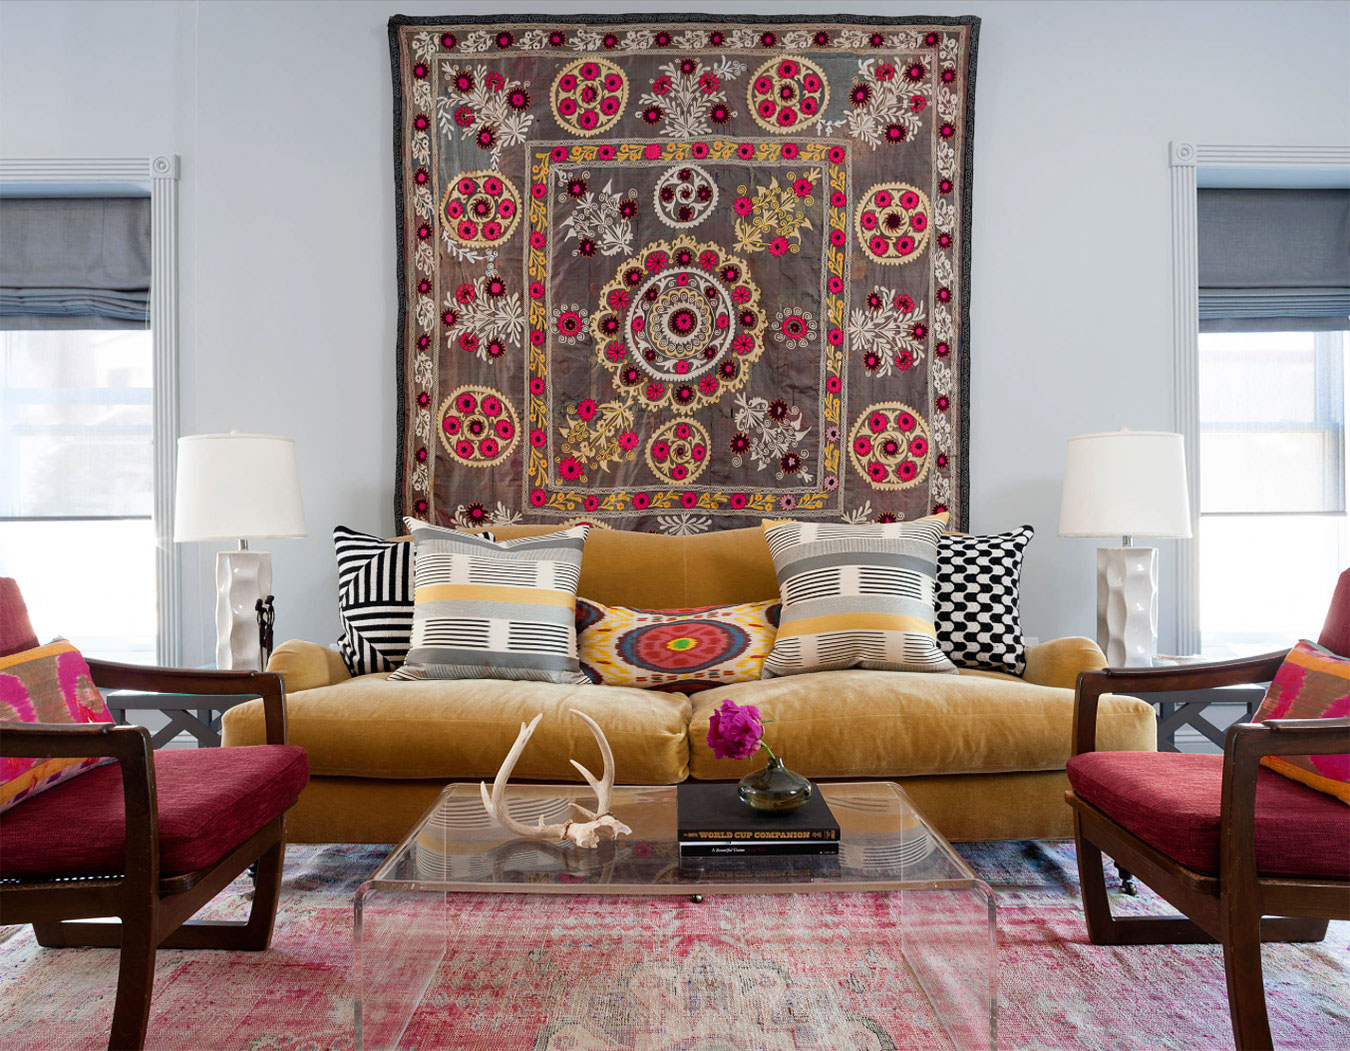 Living Room Ideas For Wall Decor non traditional wall ideas to make a bold statement carpet as decor idea